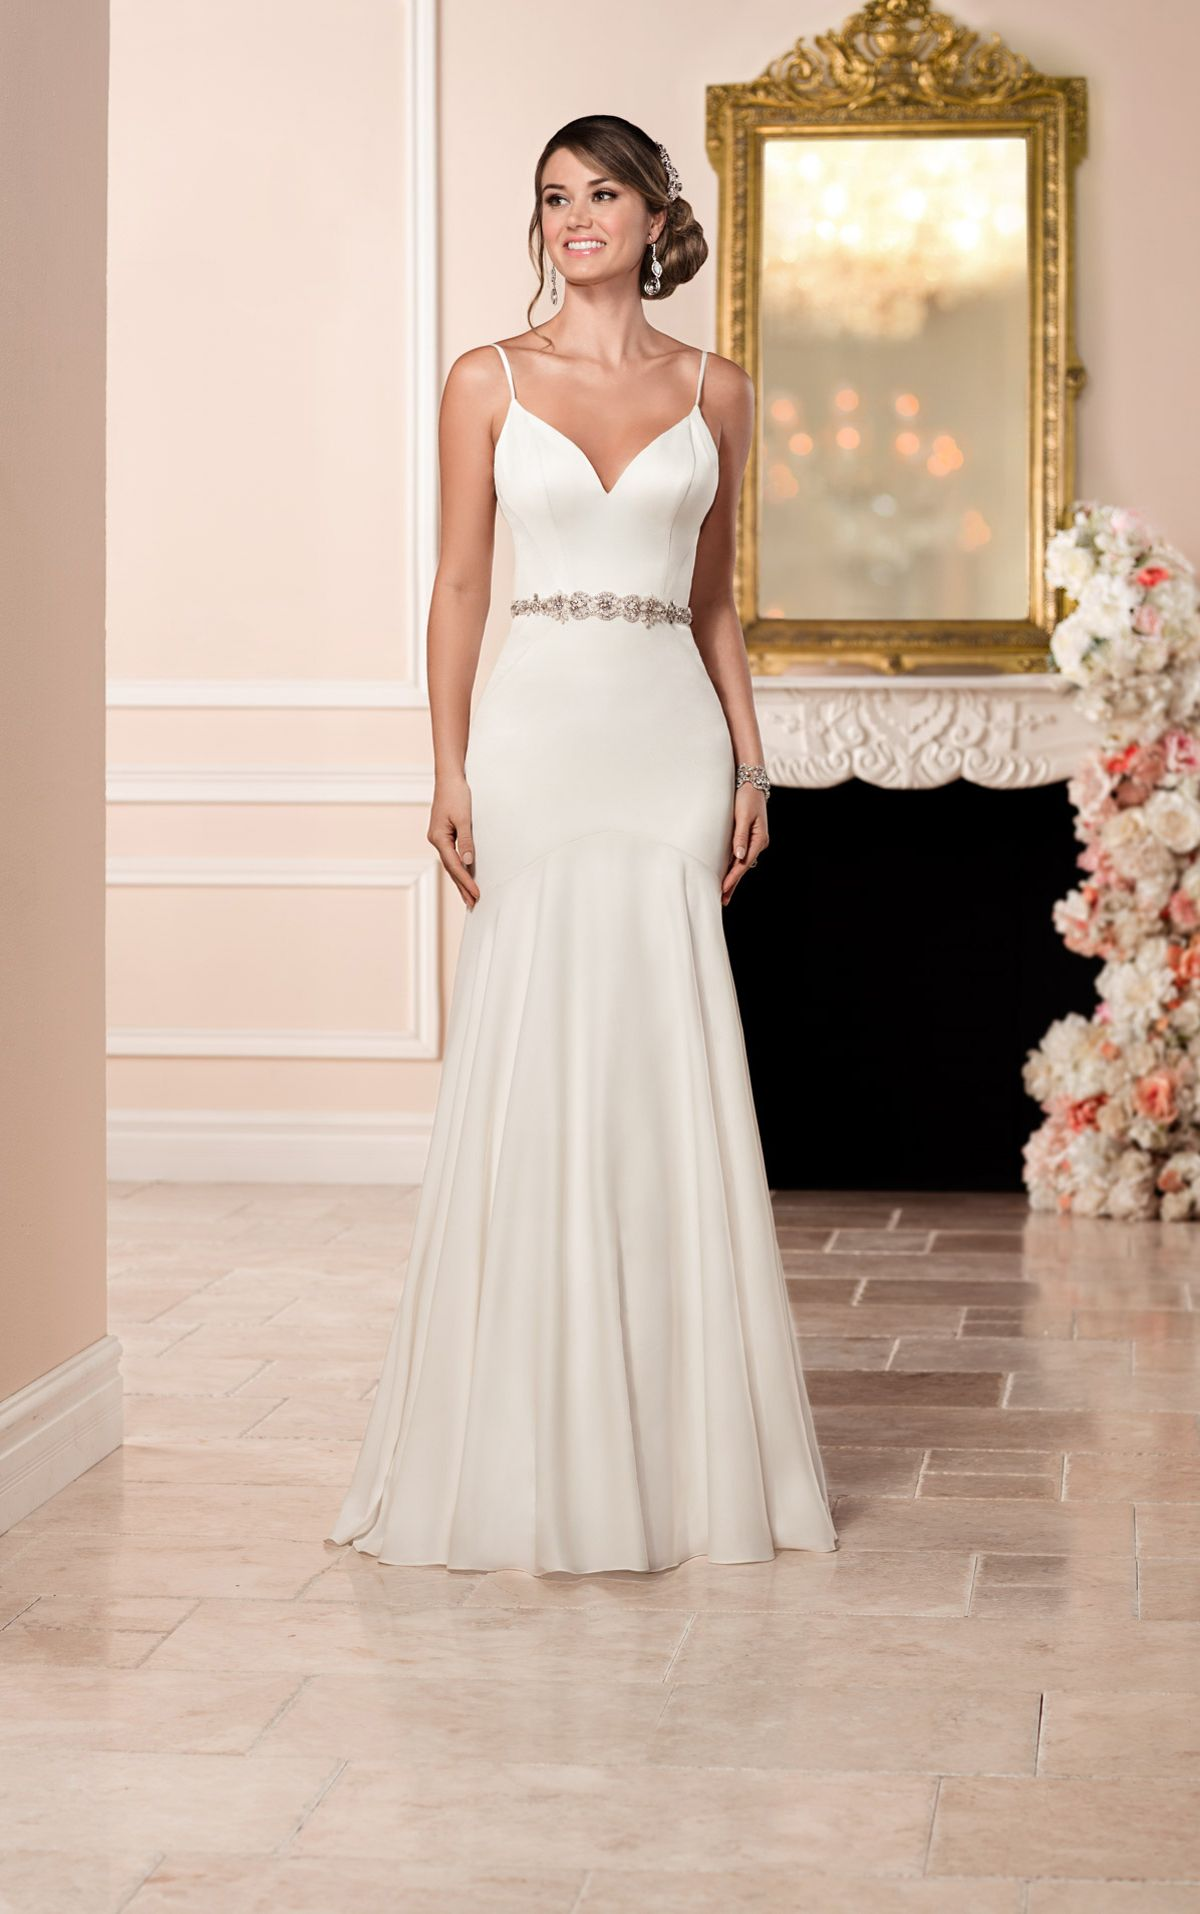 New Bridal Gown Available at Ella Park Bridal | Newburgh, IN | 812.853.1800 | Stella York - Style 6332